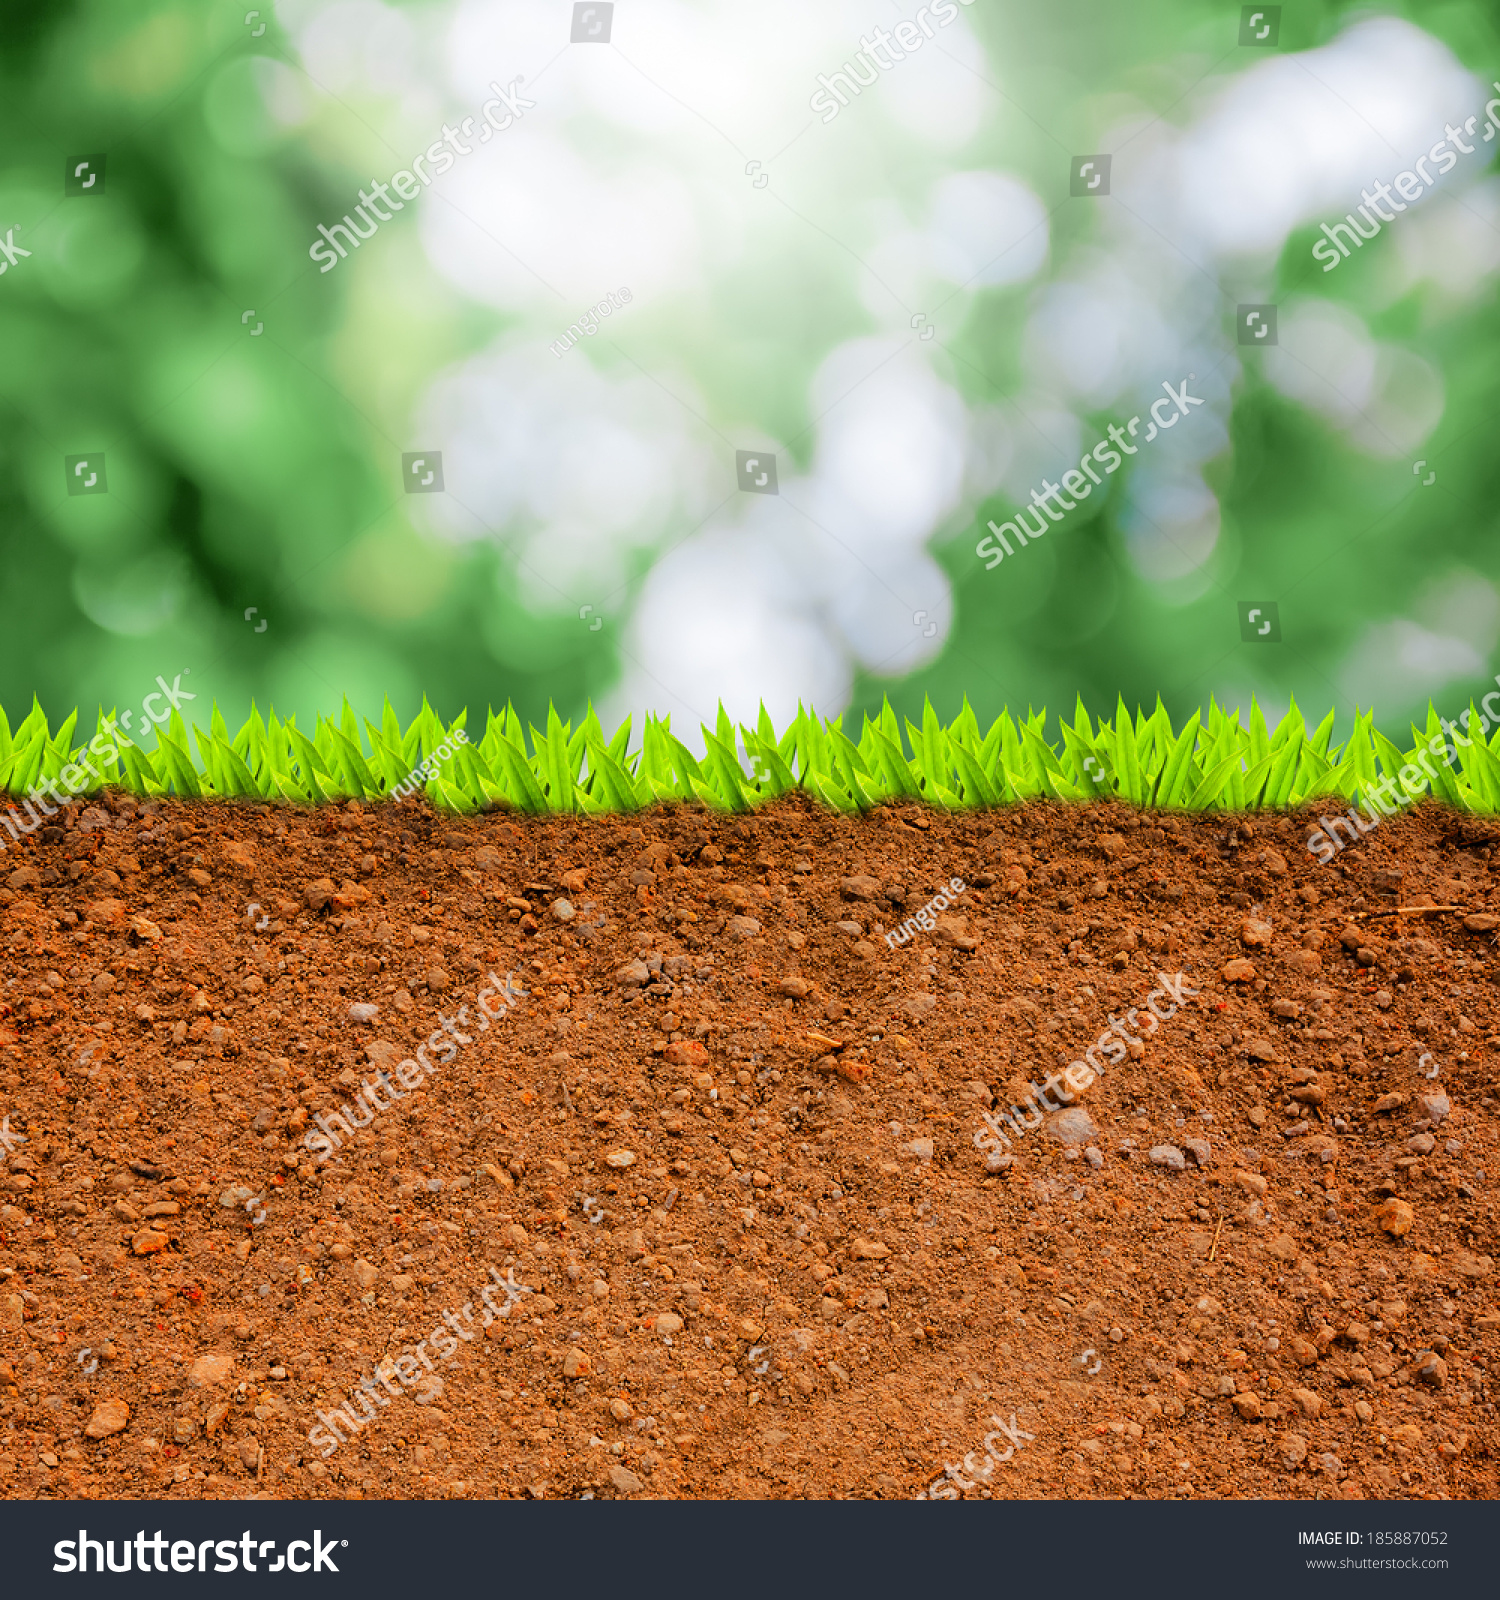 Cross Section Of Grass And Soil Against… Stock Photo